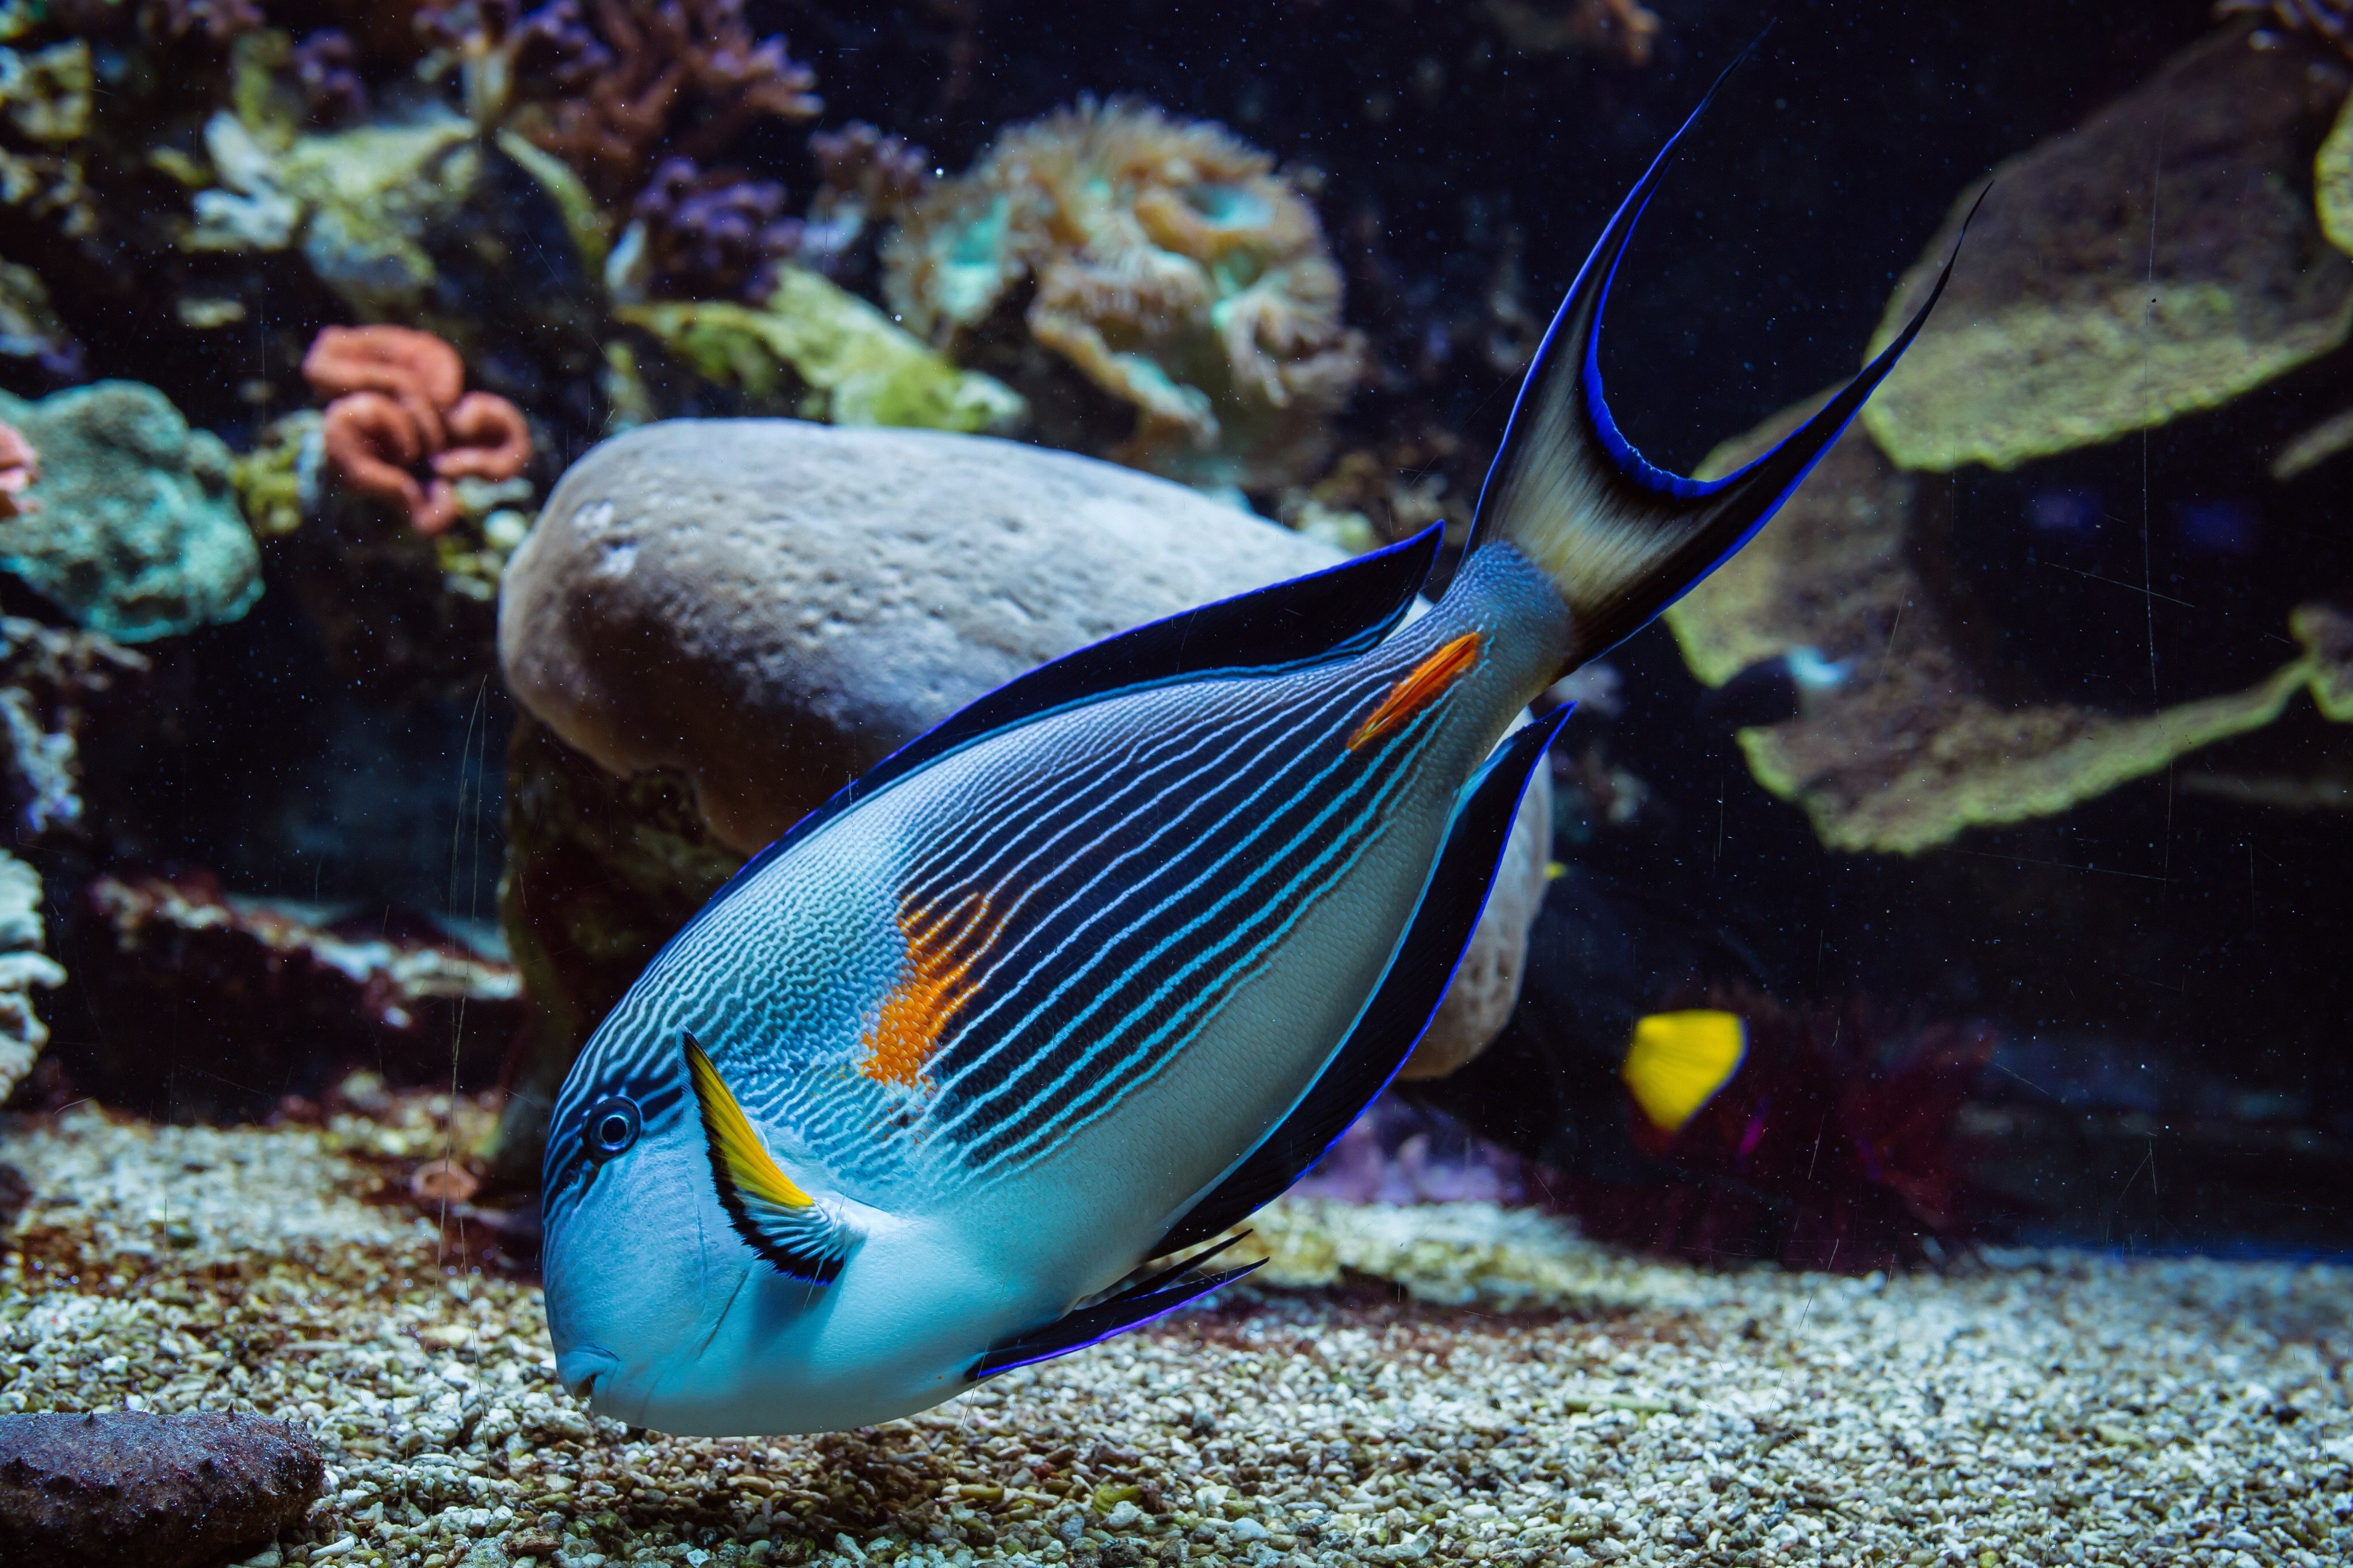 underwater, fish, undersea, sea life, swimming, animals in the wild, animal wildlife, sea, water, animal themes, no people, close-up, nature